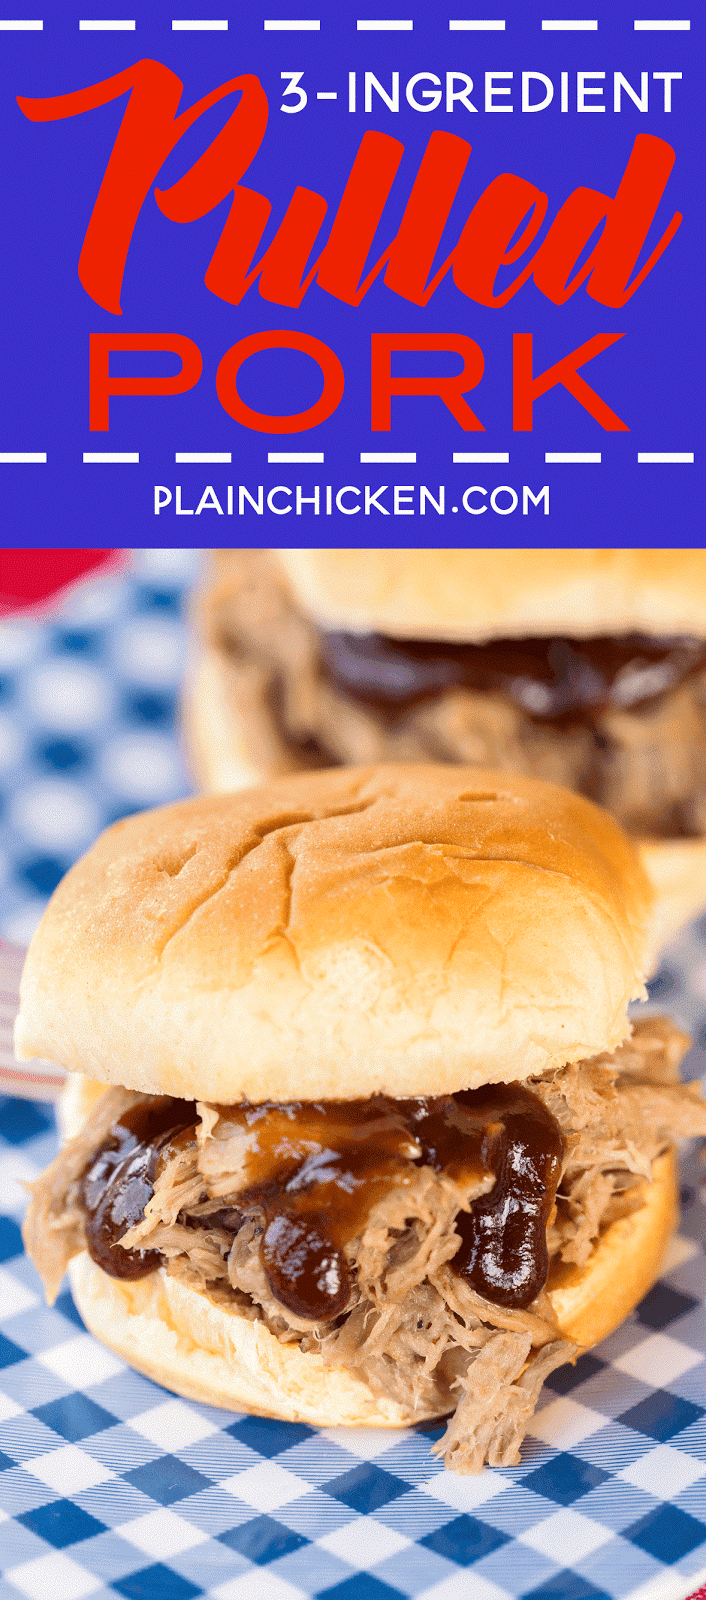 Slow Cooker 3-Ingredient Pulled Pork - Plain Chicken